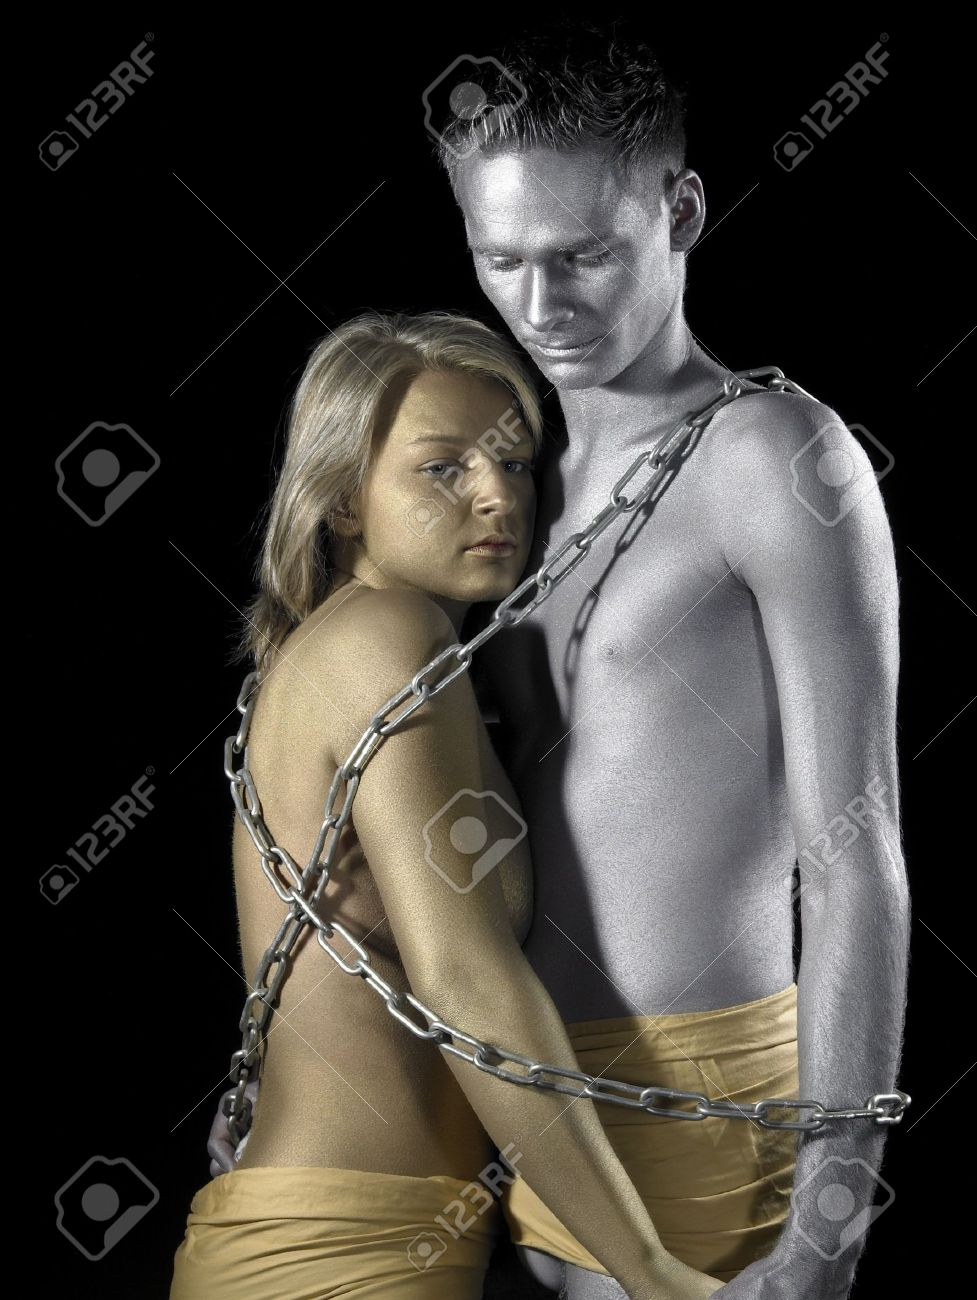 studio photography of a gold and silver bodypainted couple in chains Stock Photo - 11402874